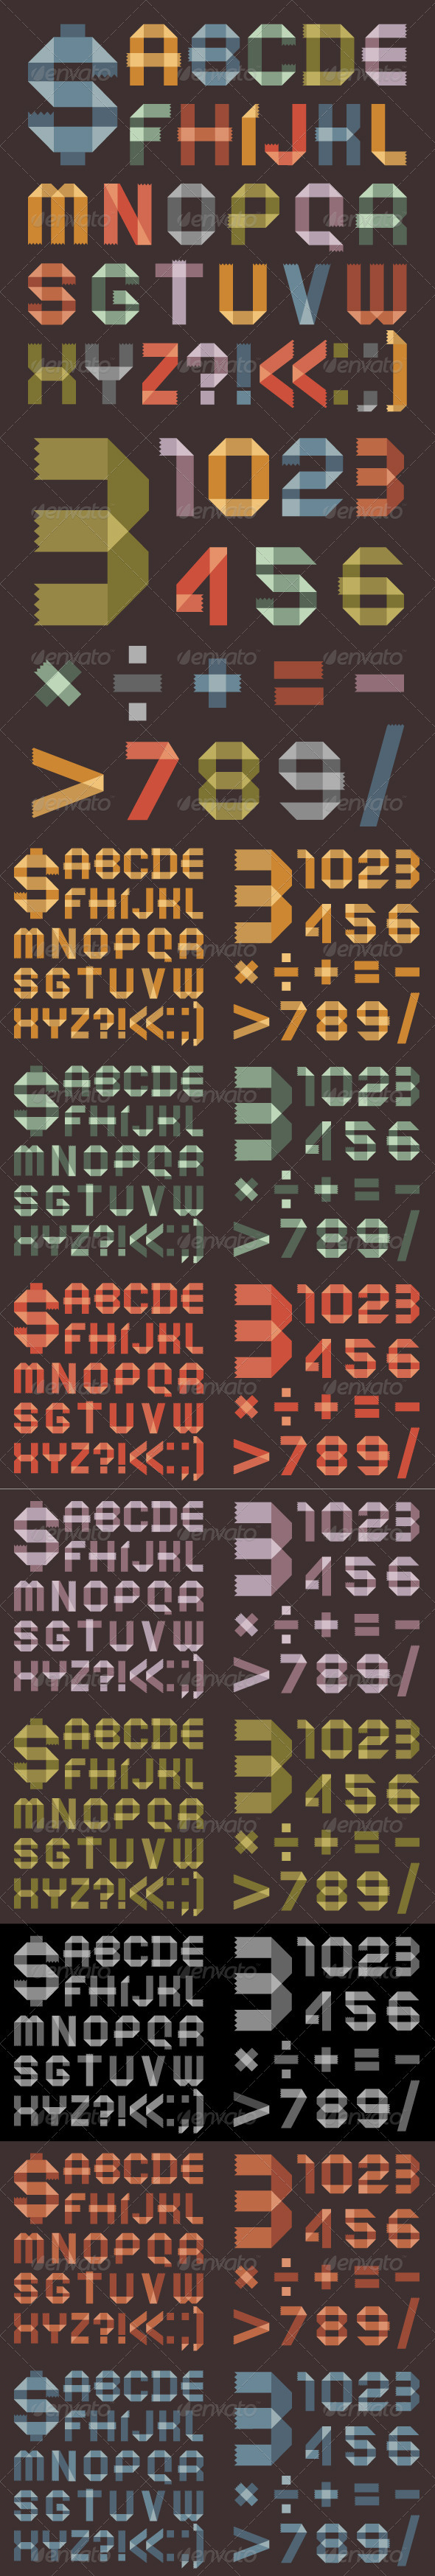 GraphicRiver Font From Colored Scotch Tape 8 Colors 3806901